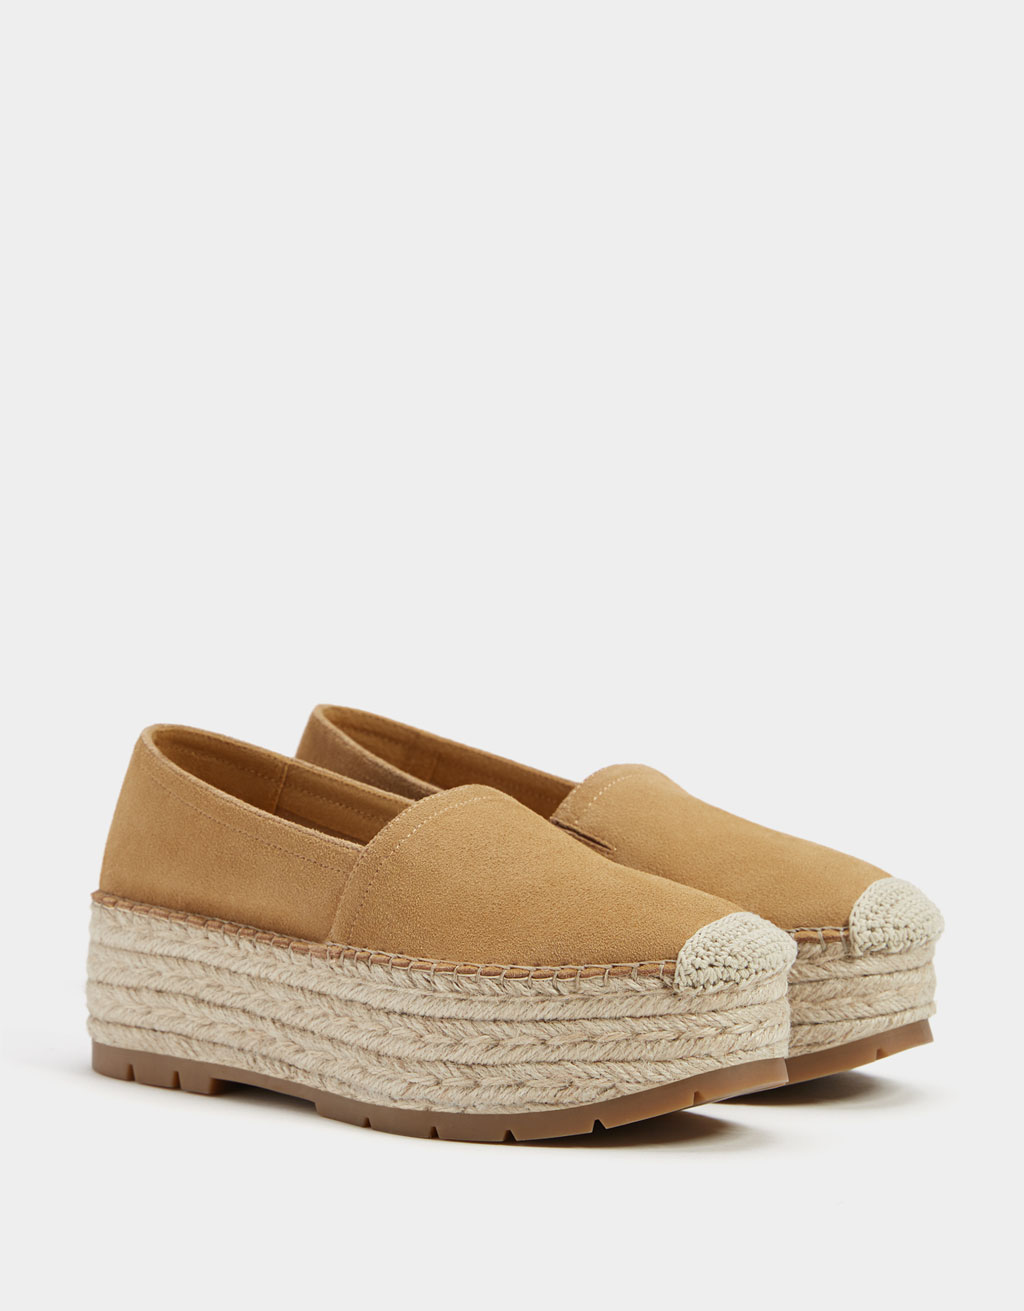 LEATHER and jute platforms